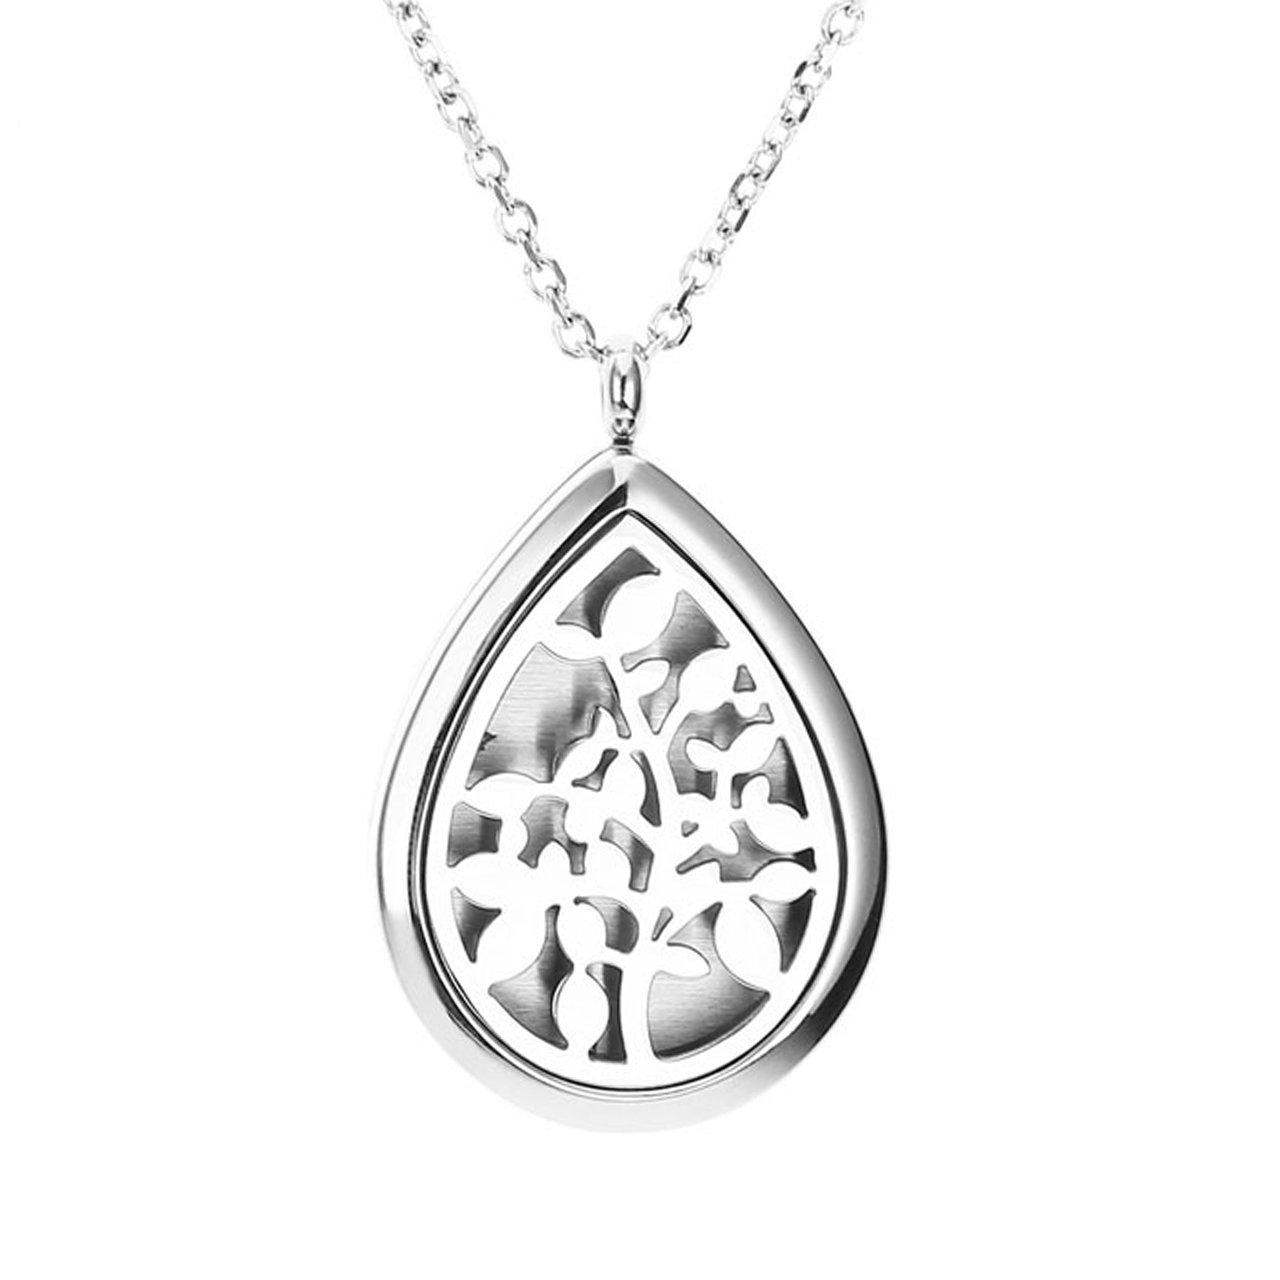 Zysta Essential Oil Diffuser Necklace - Fragrance Aromatherapy Perfume Pendant Stainless Steel Locket with 6 Refill Pads and 24 Inch Chain